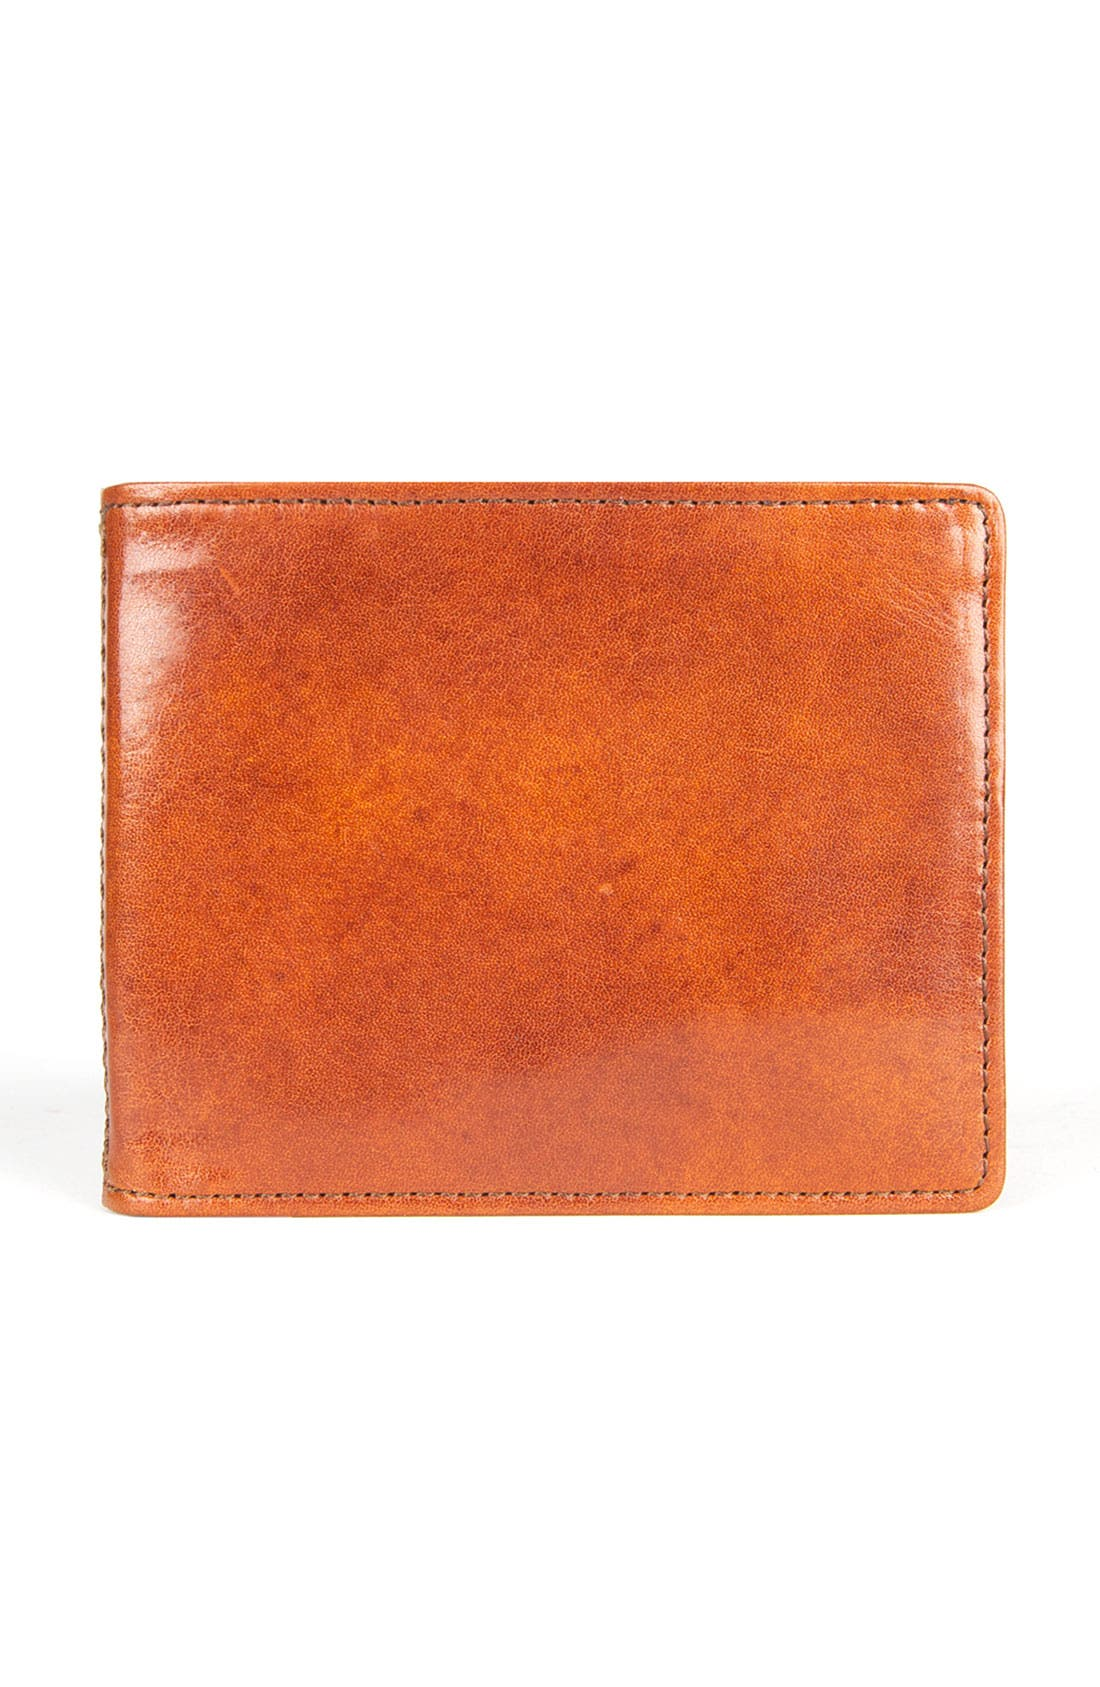 Main Image - Bosca 'Old Leather' Wallet